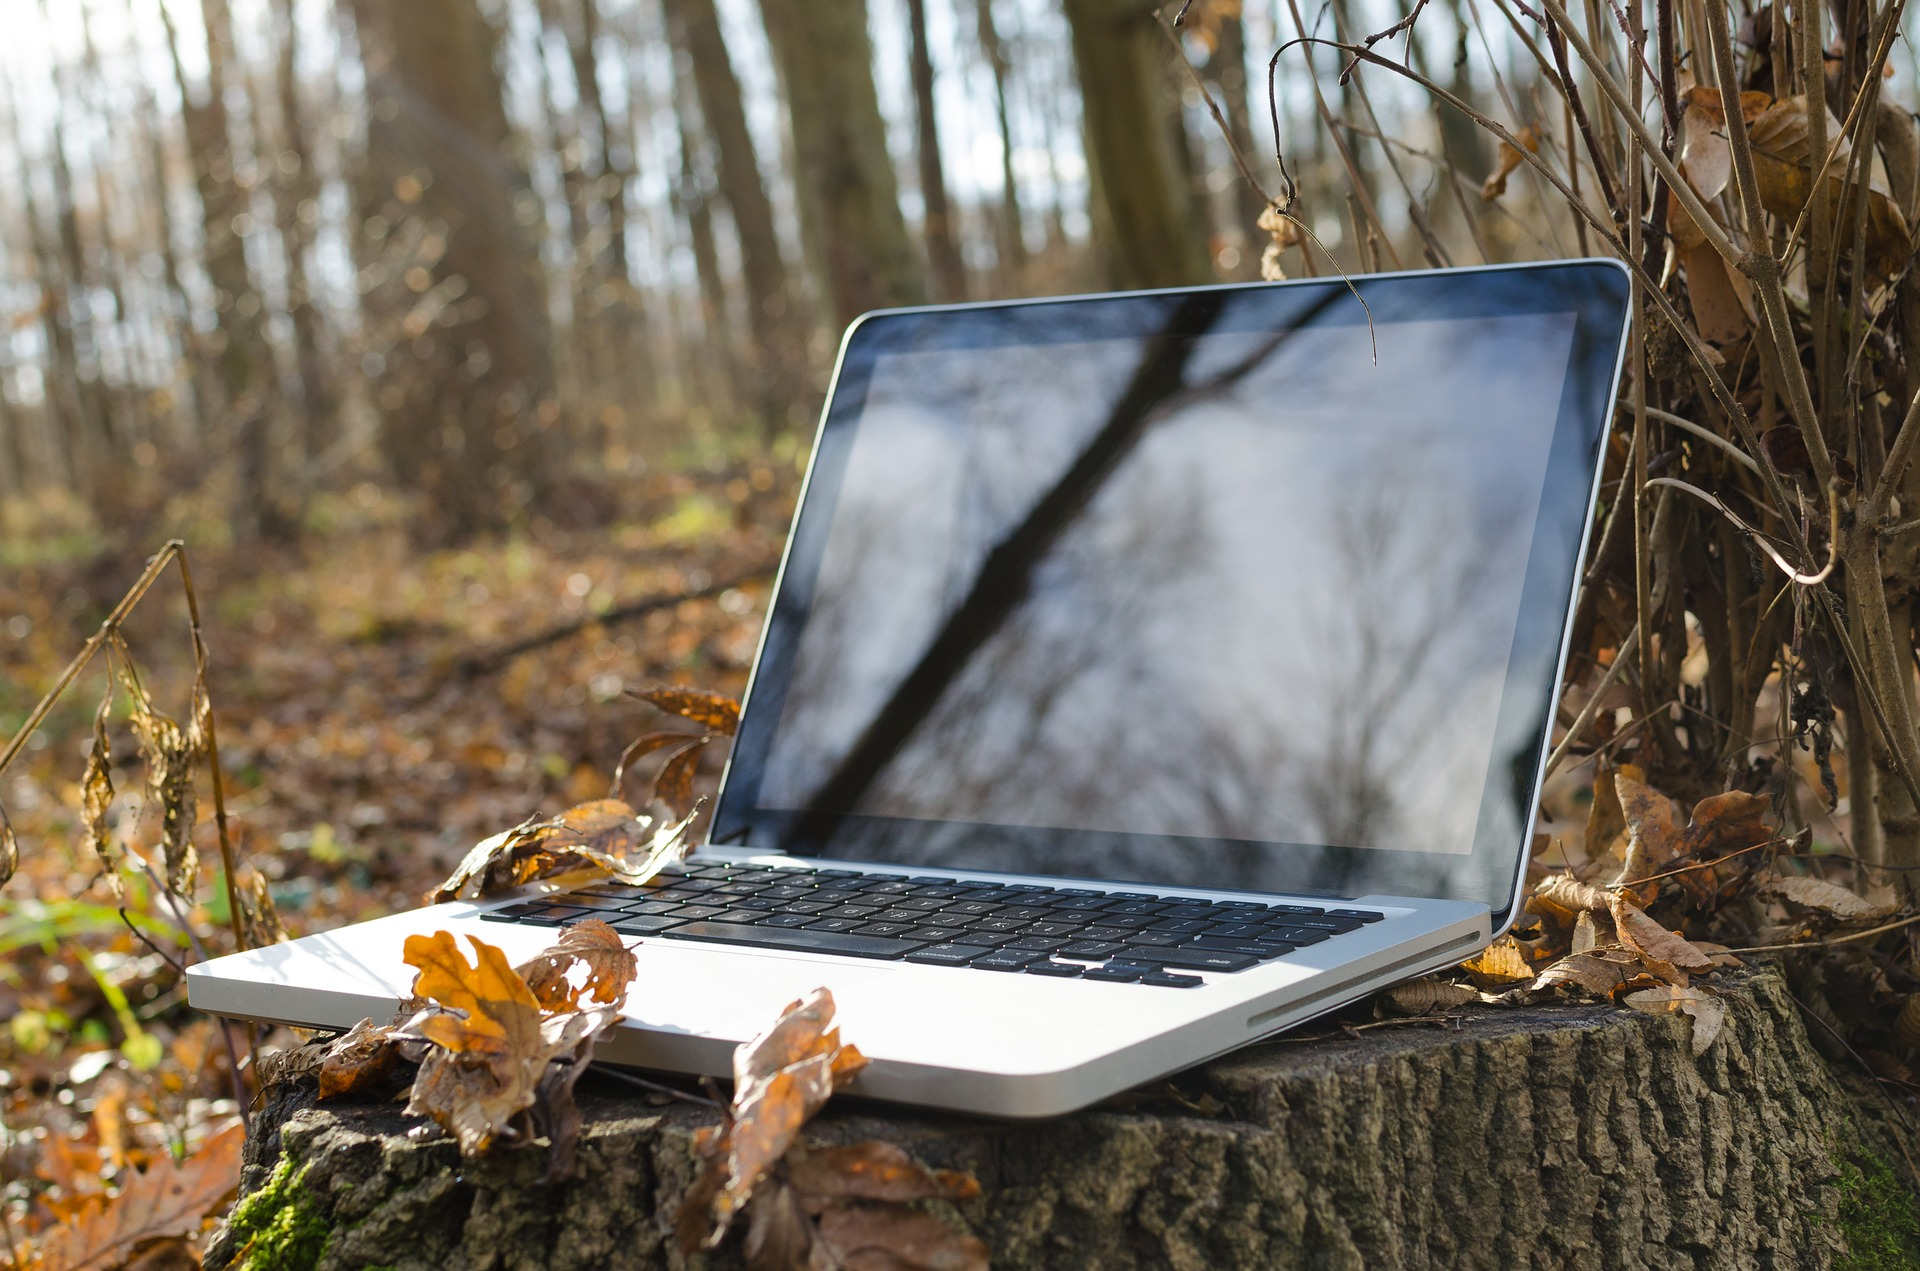 Apple MackBook on Top of Forest Stump - SolVibrations